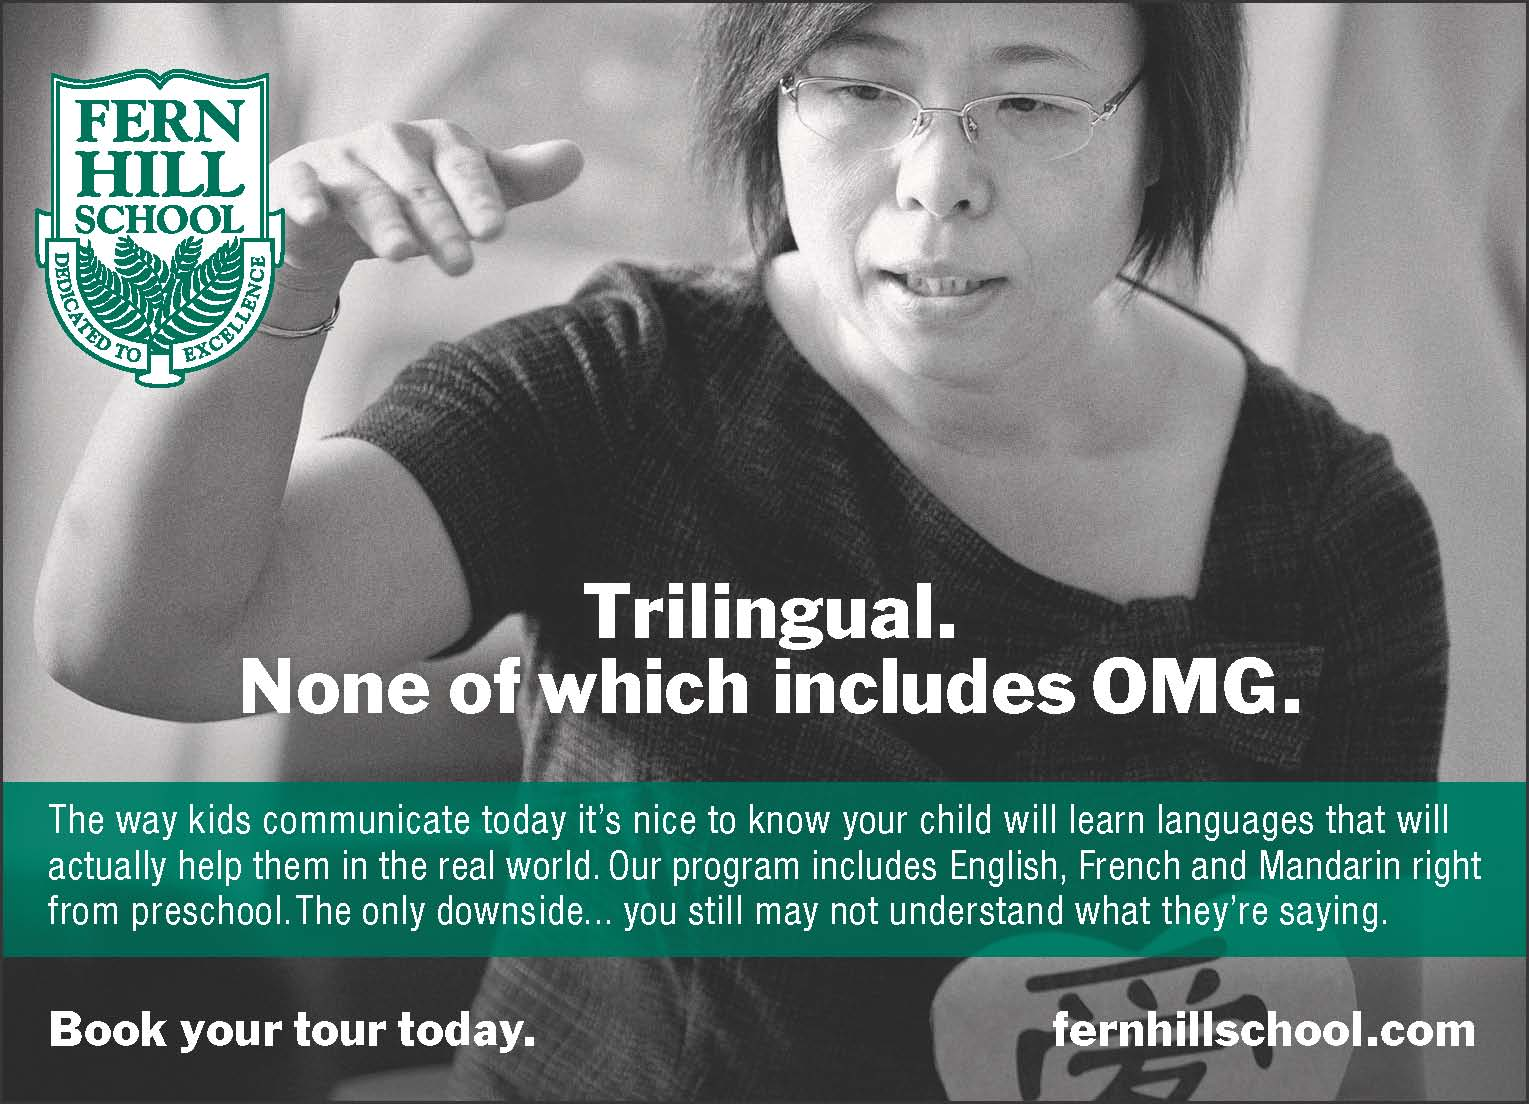 Fern Hill _Trilingual_ ad.jpg